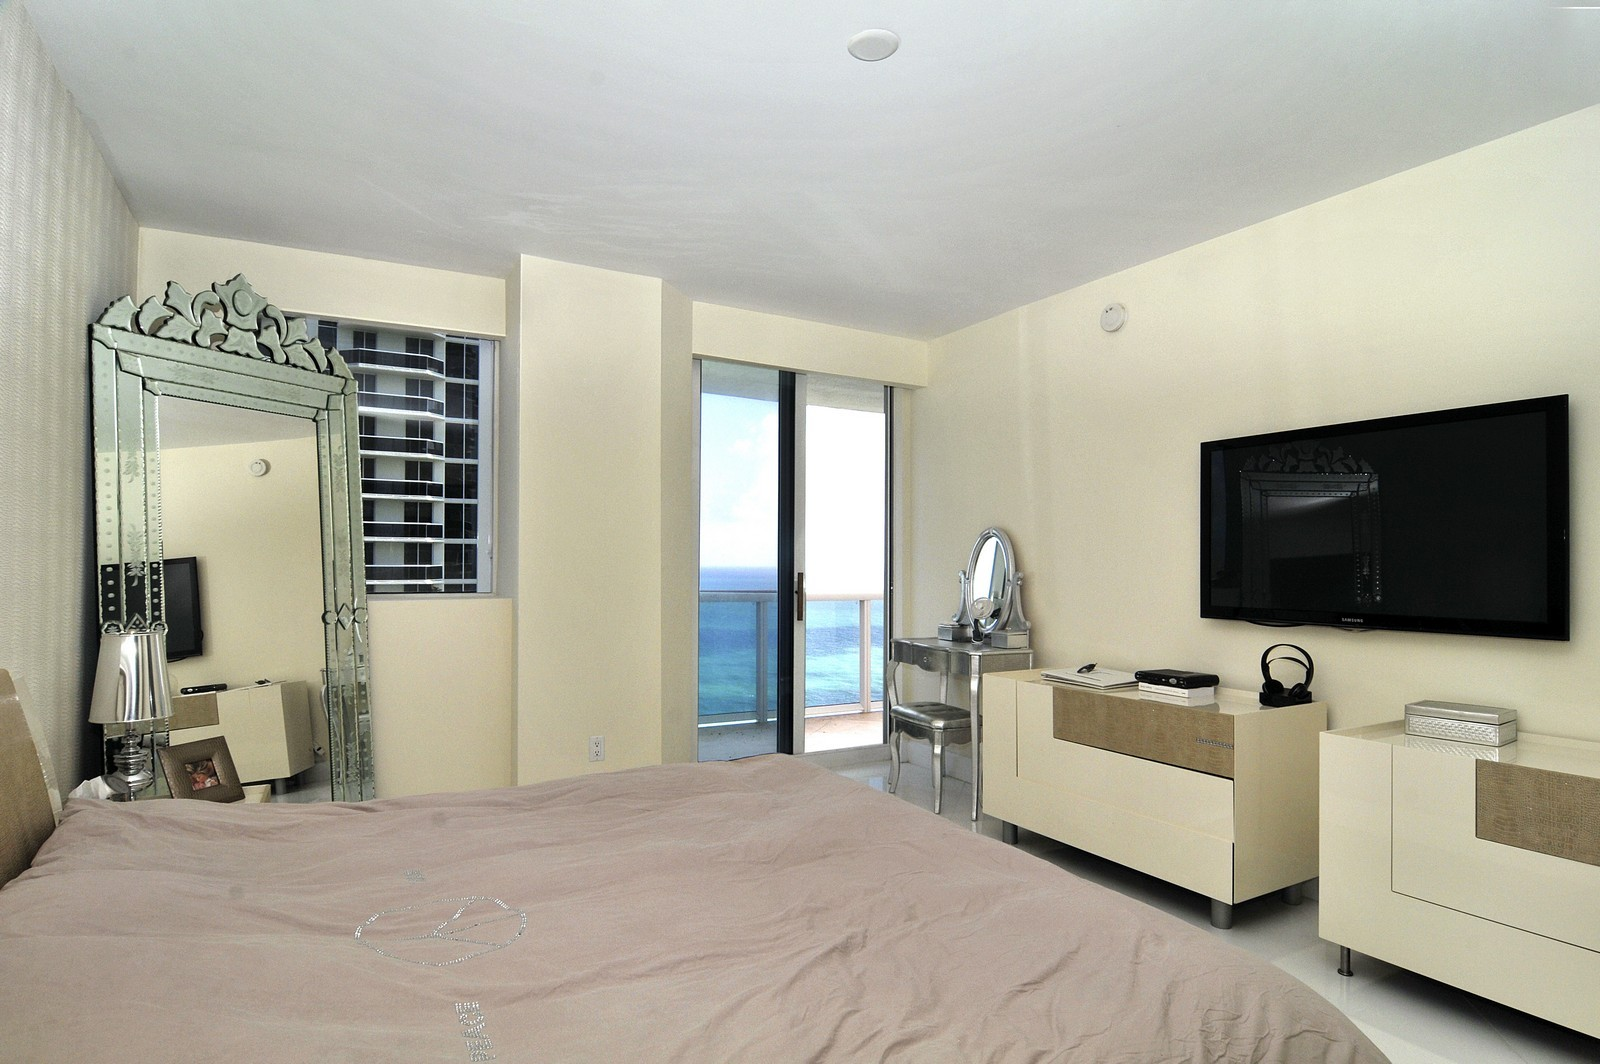 Real Estate Photography - 4775 Collins Avenue, 3401, Miami Beach, FL, 33140 - Master Bedroom